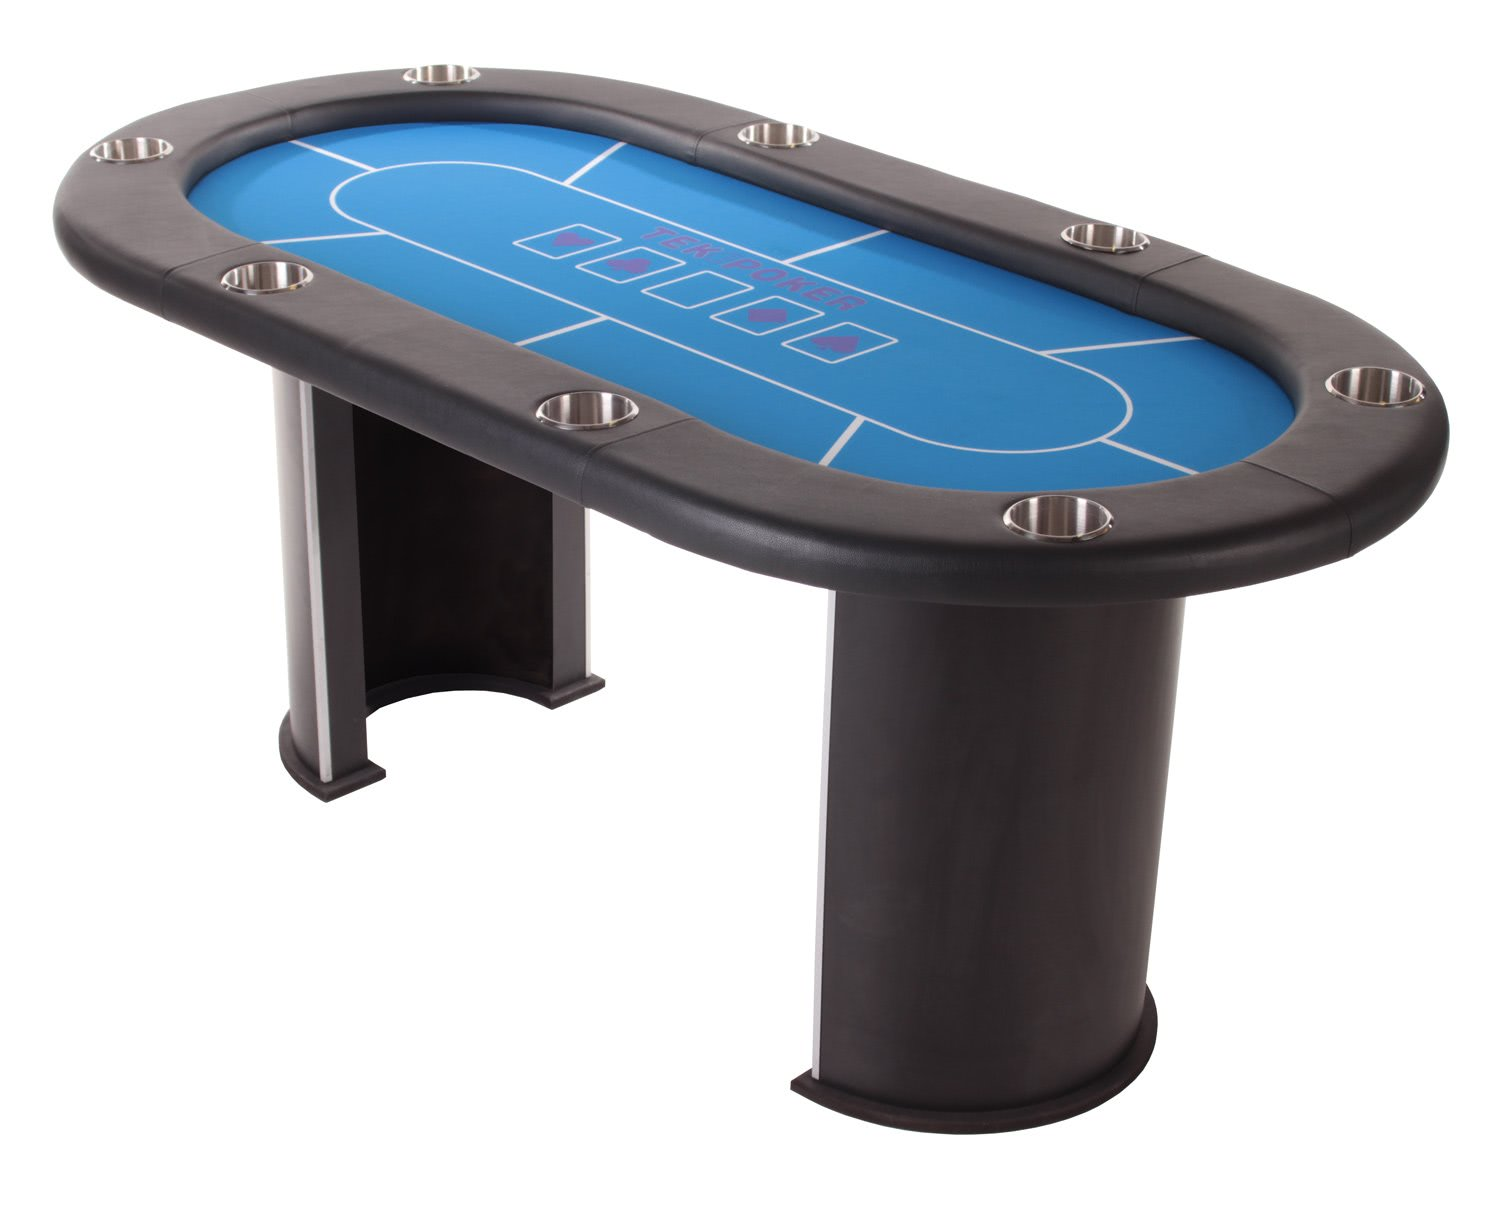 Tekscore Pro Curved Leg Poker Table Liberty Games